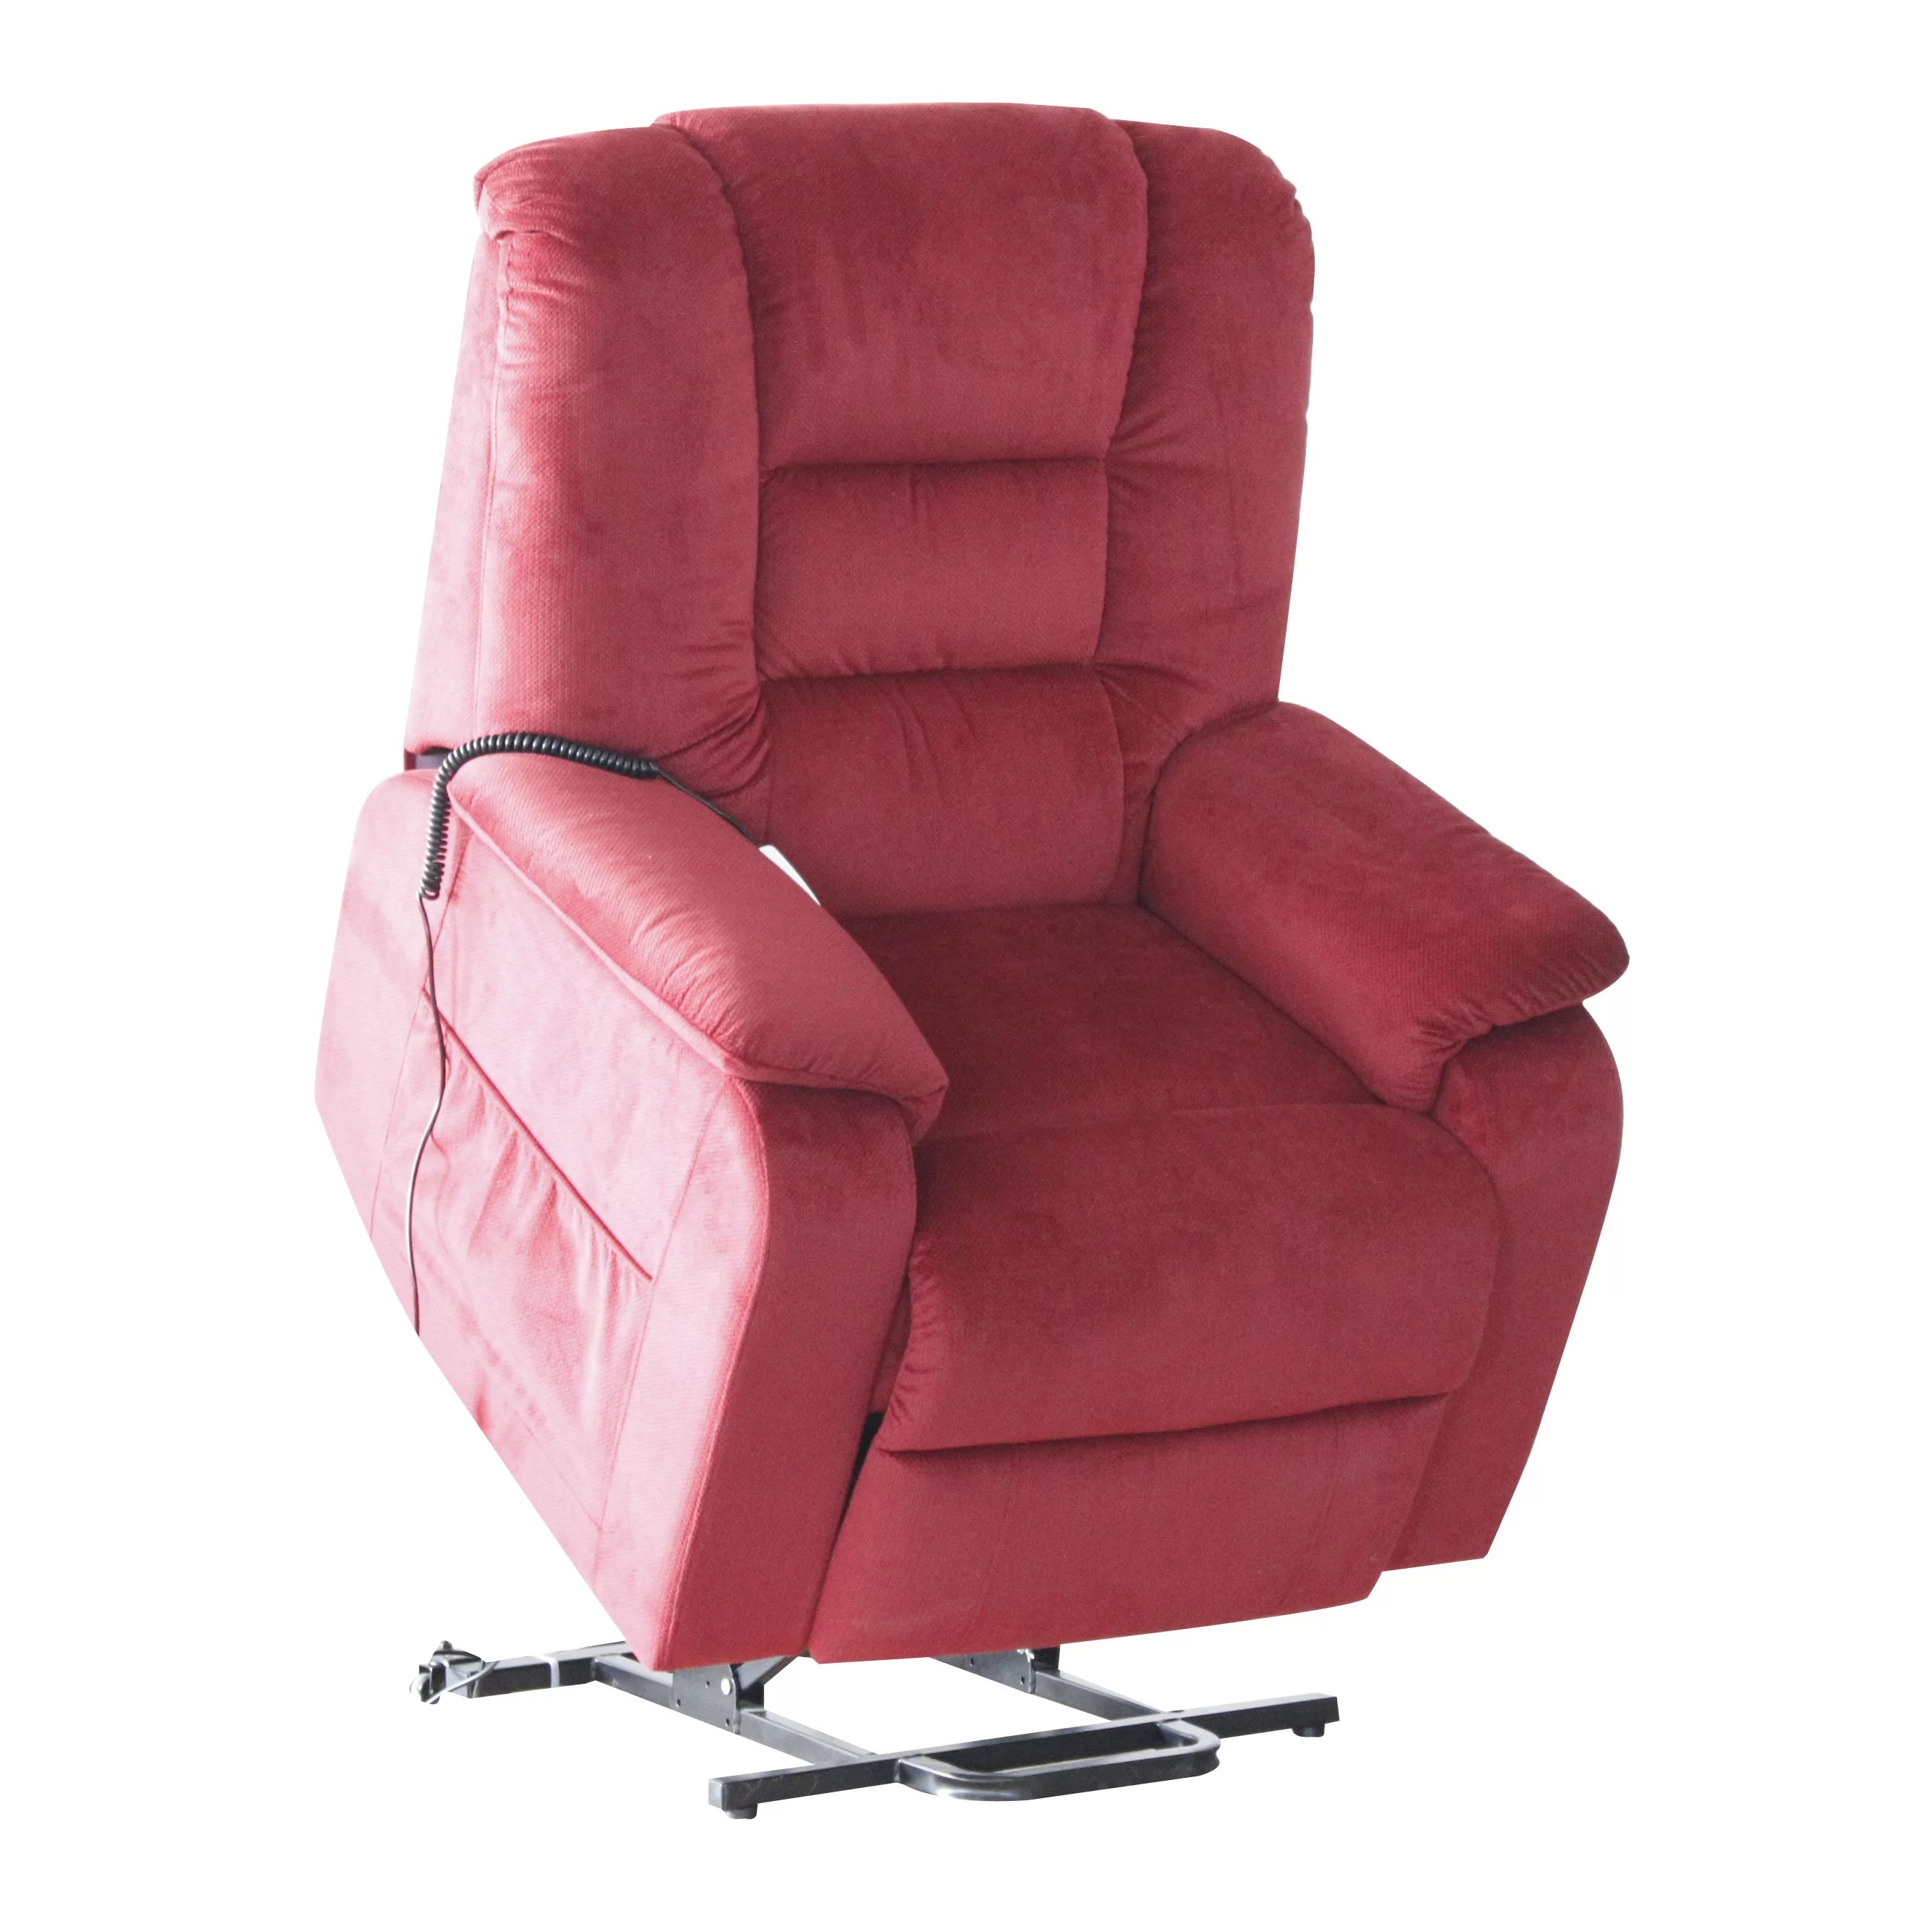 power recliner chairs reviews chair covers to stop cats serta lift bristol and